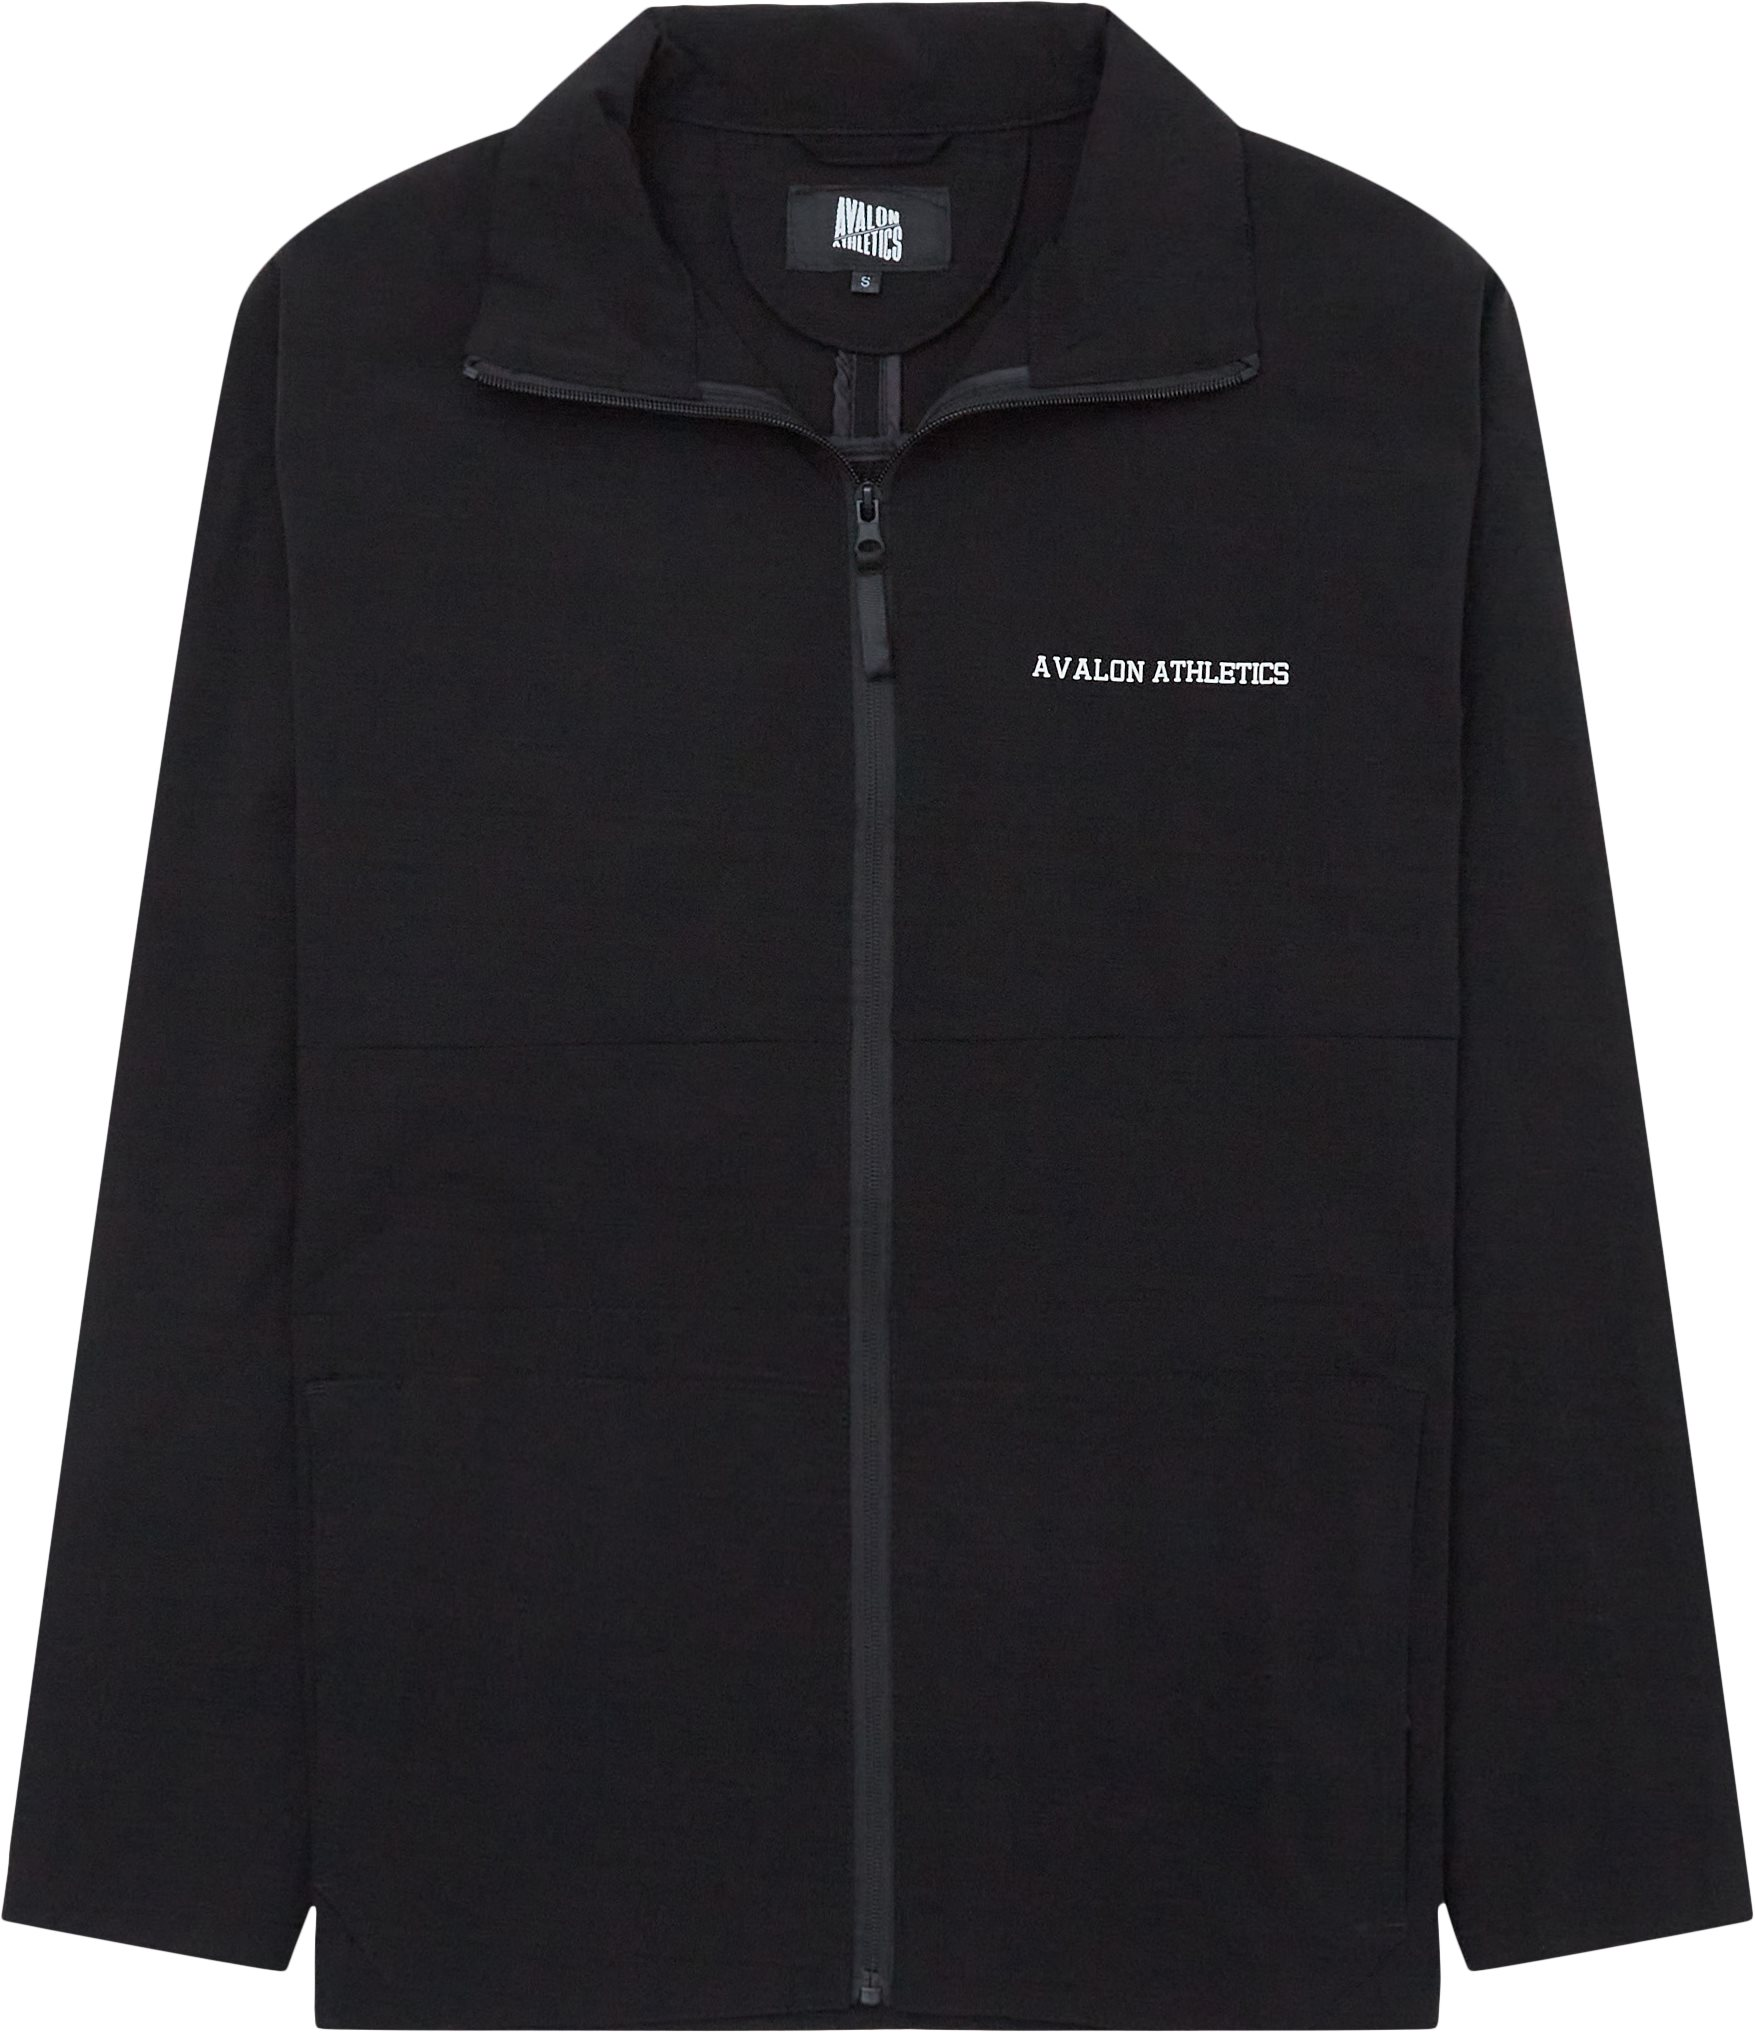 Phil Track Top - Jackets - Regular - Black